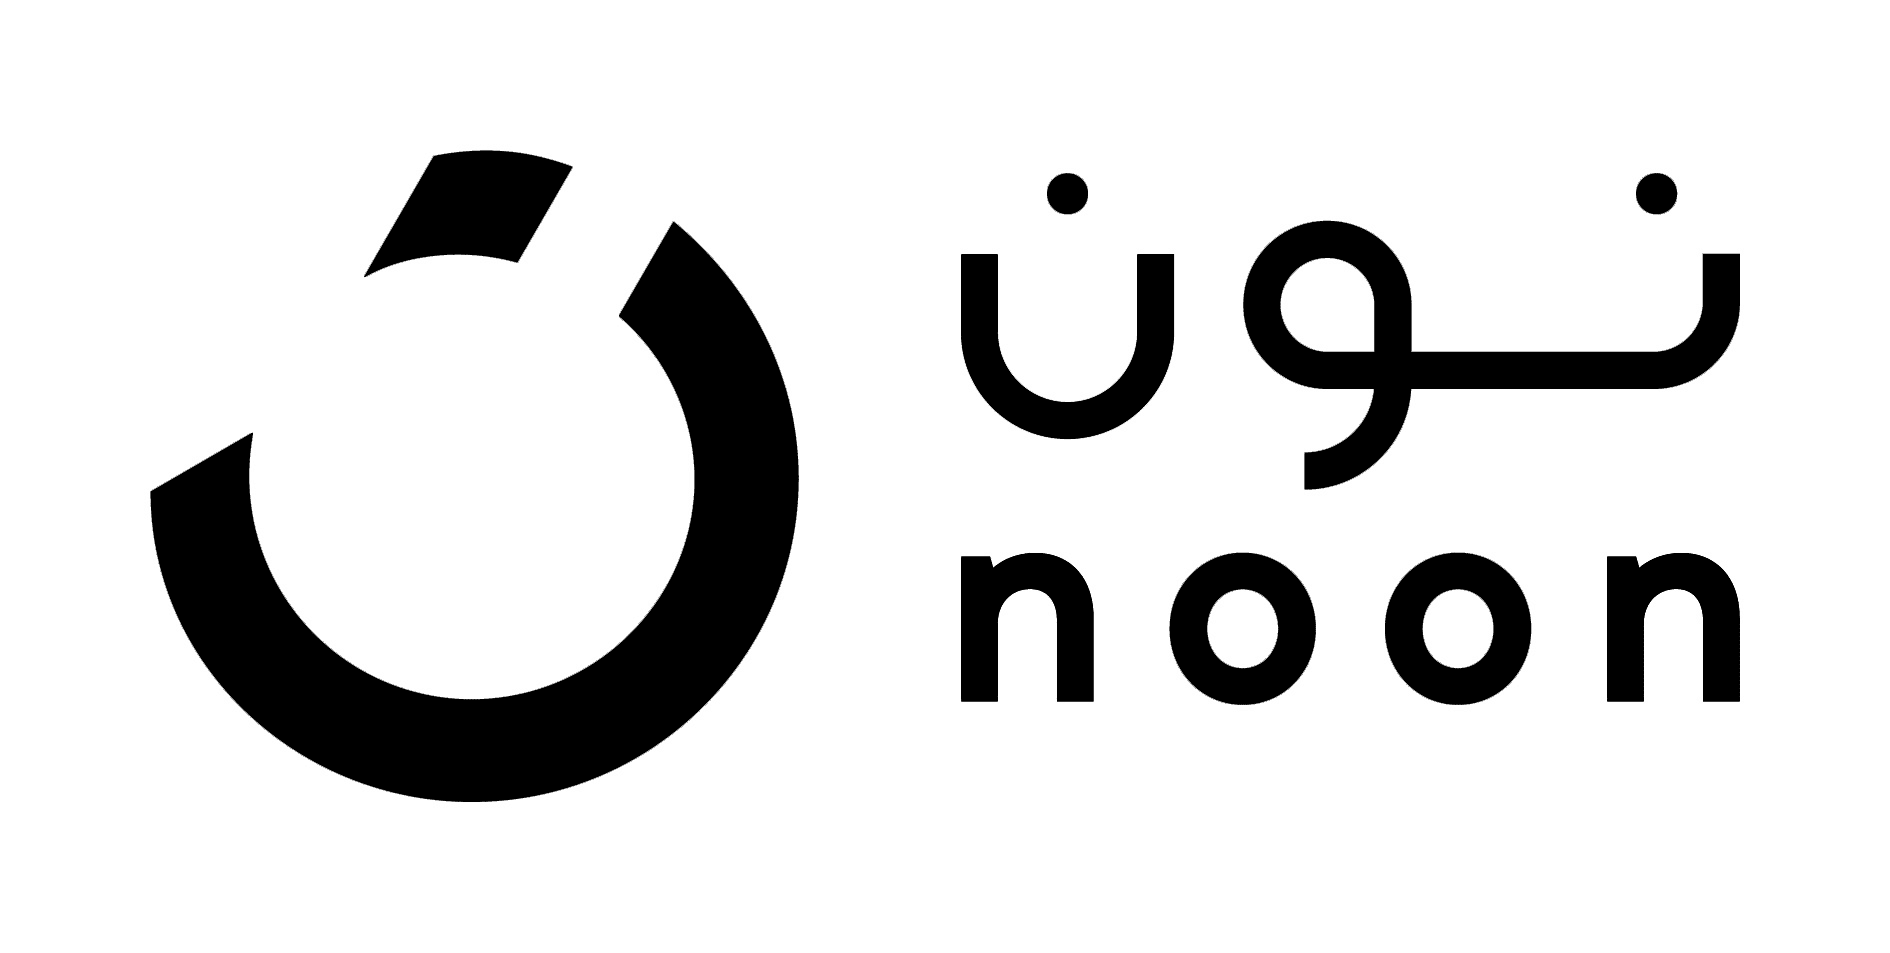 Best Offers : 10% Discount With Noon Coupon